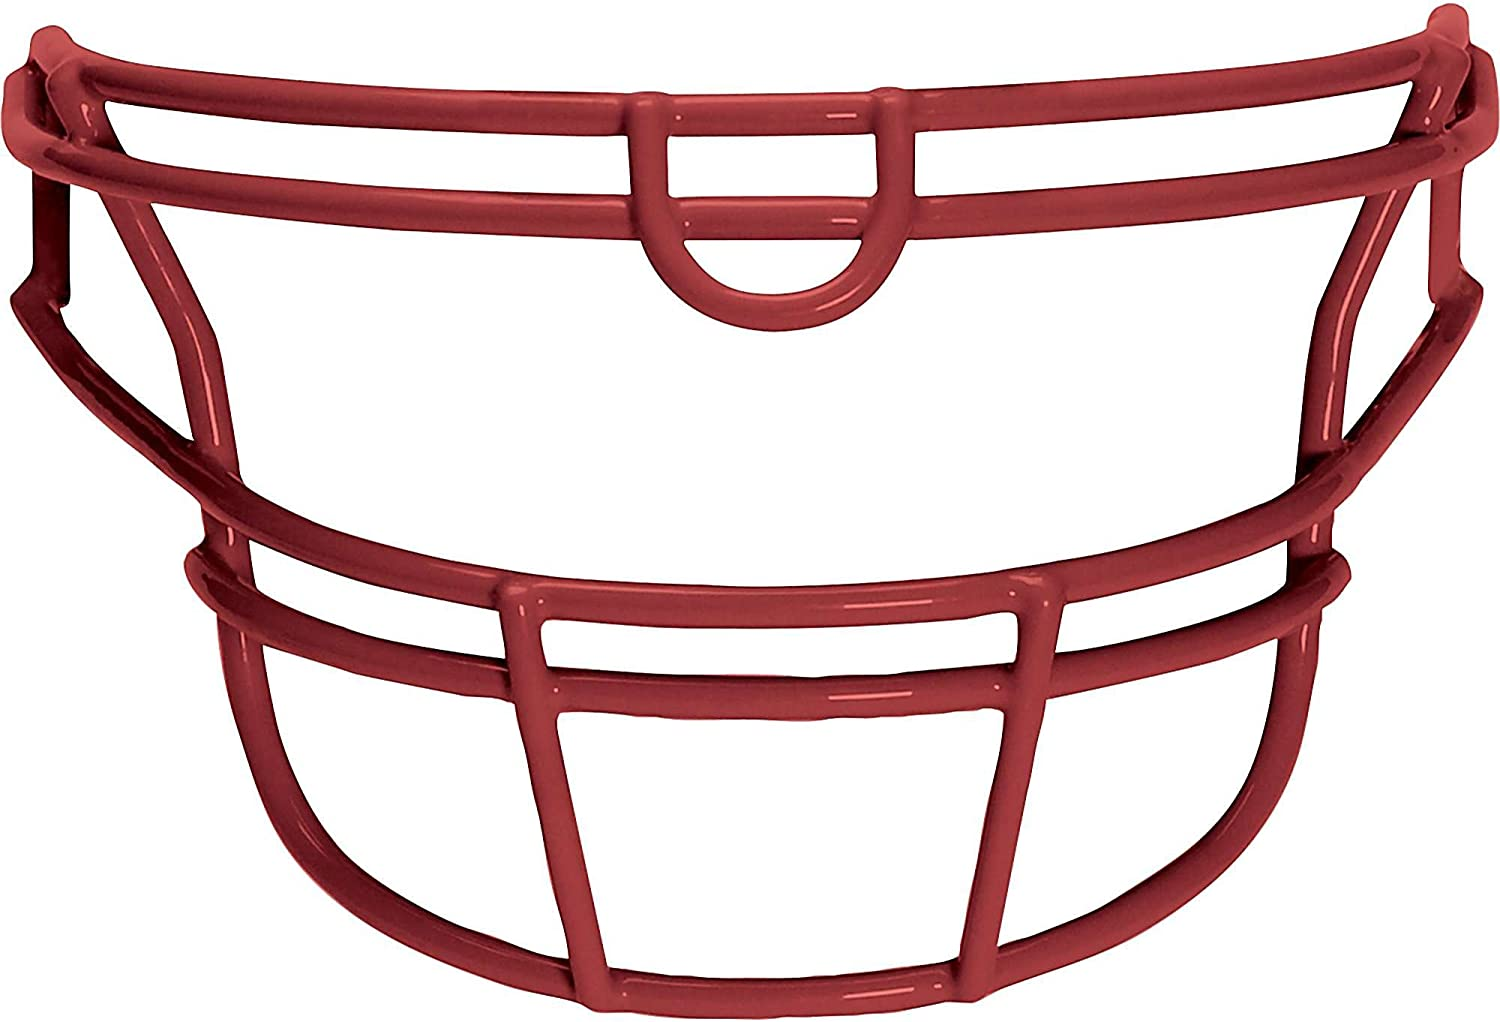 Schutt DNA ROPO Large-scale sale UB Faceguard Youth YF 40% OFF Cheap Sale